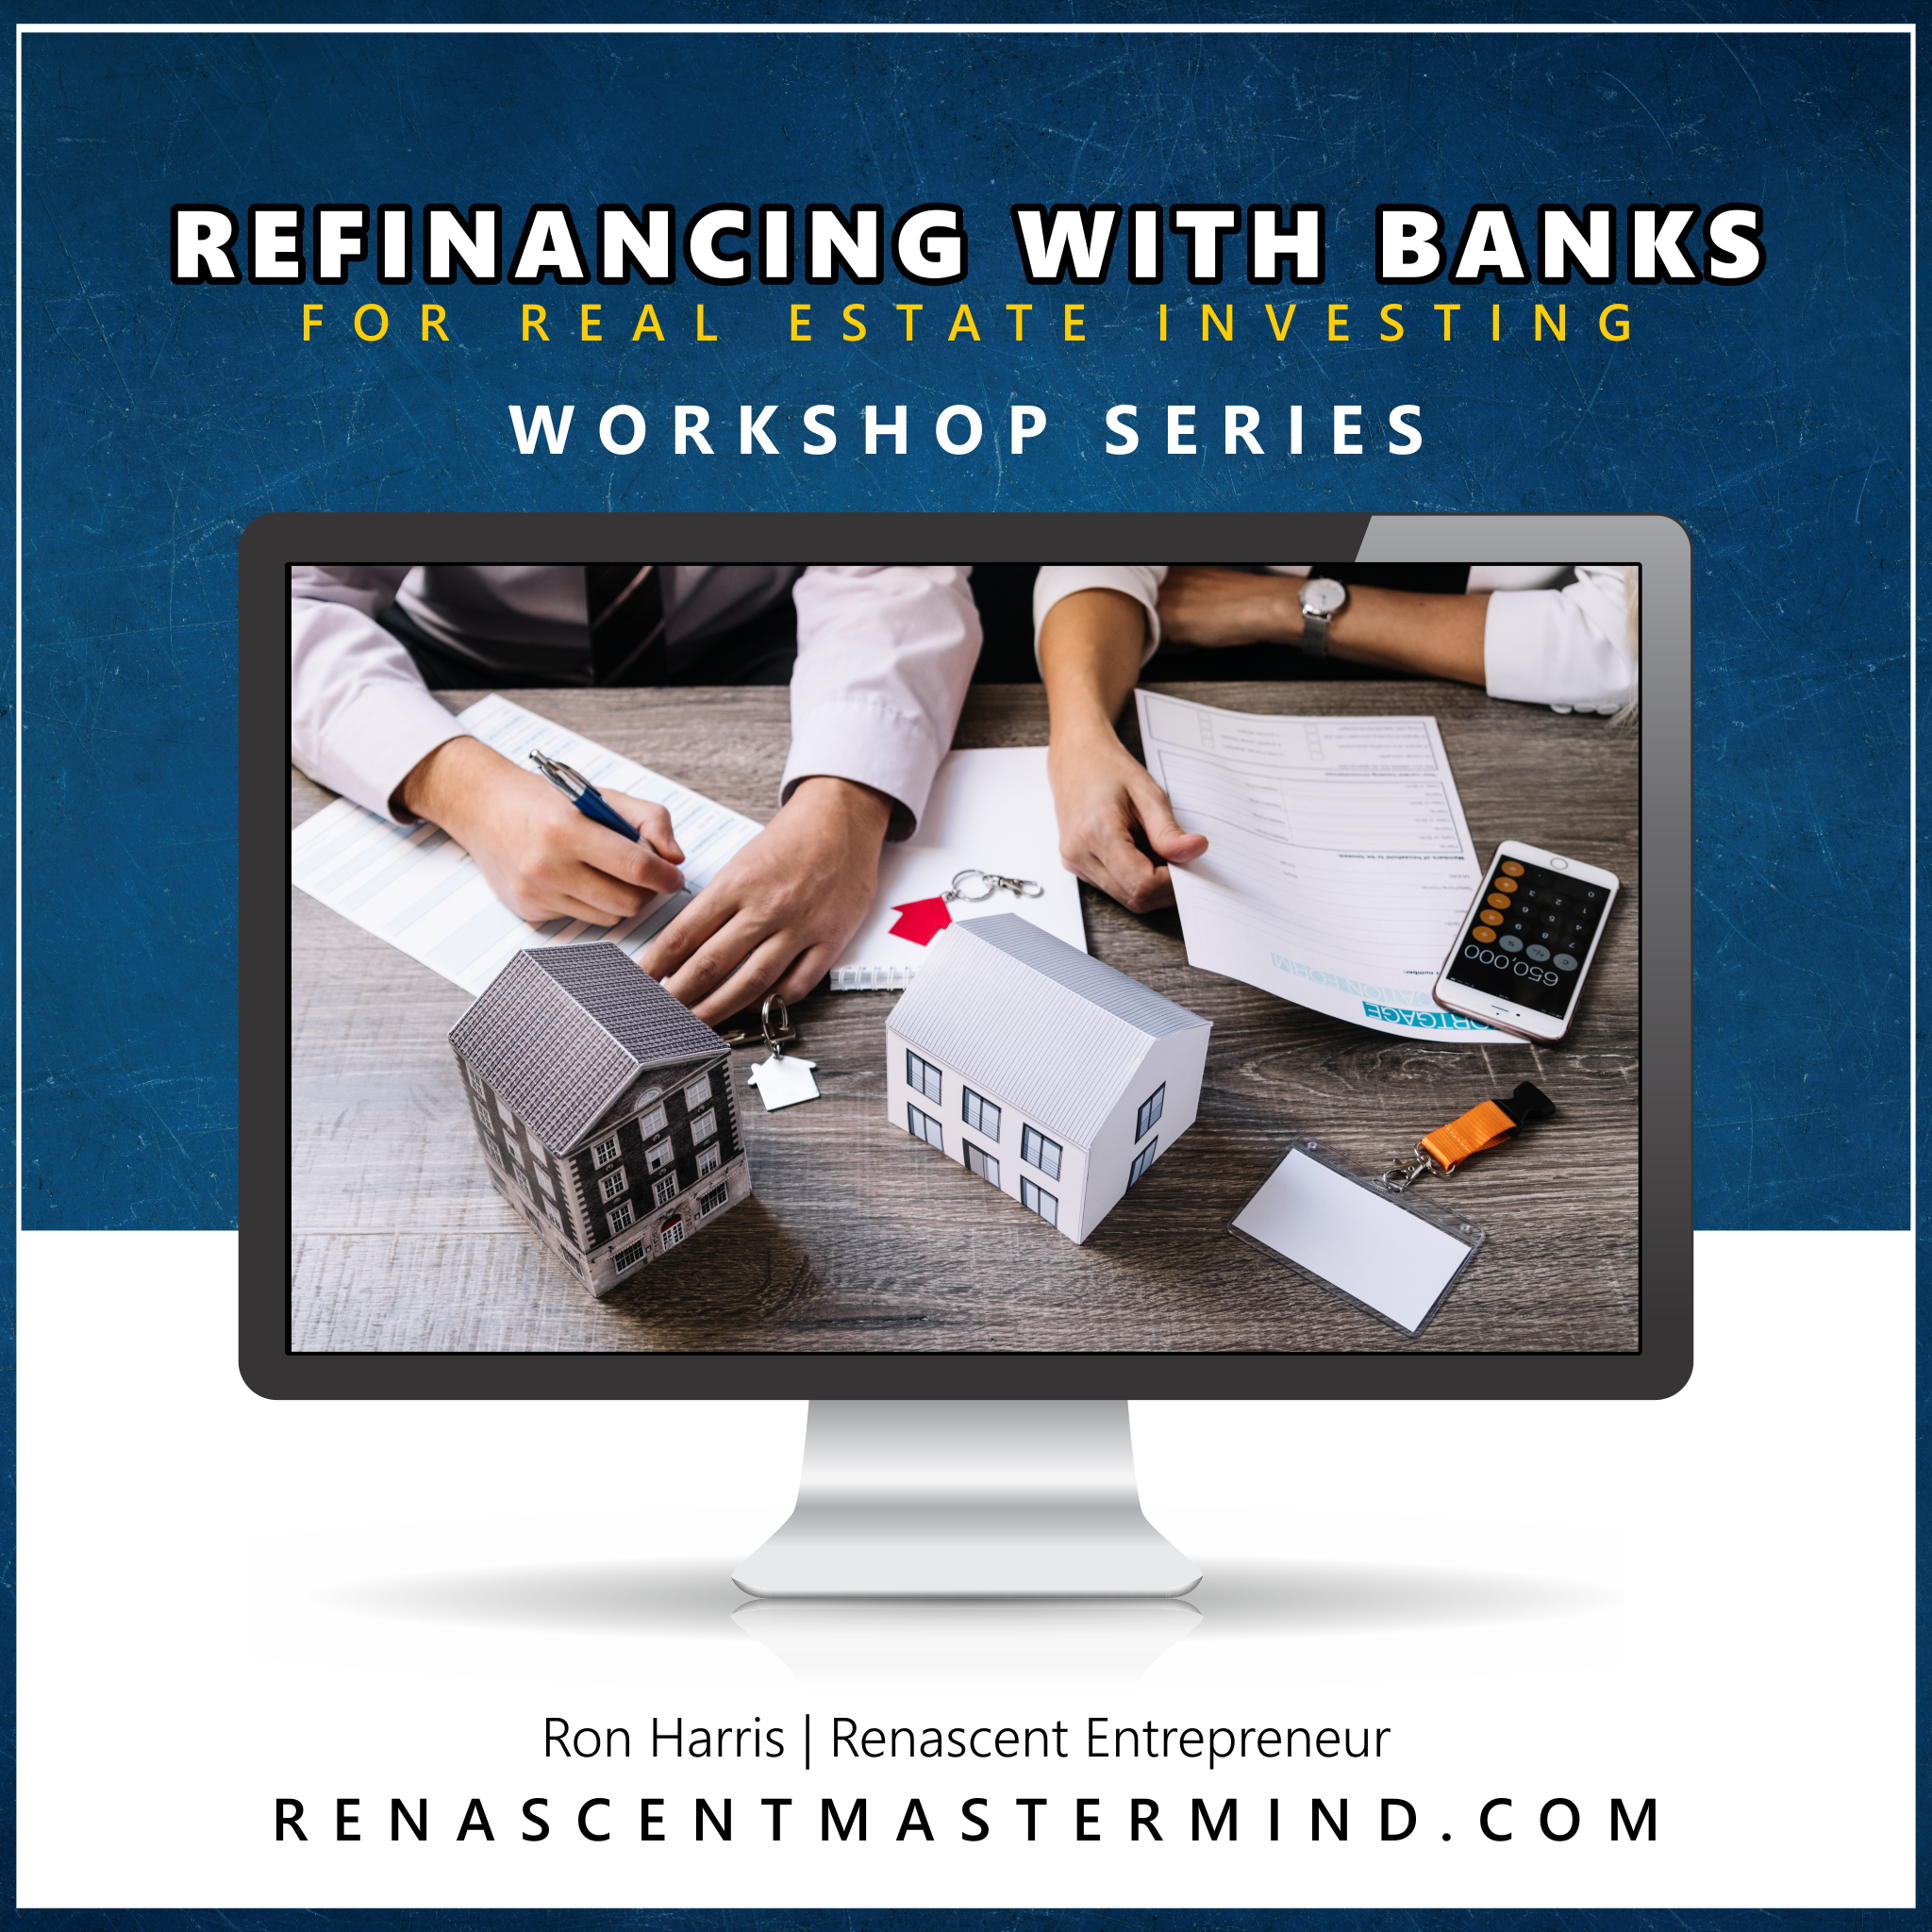 Workshop Series 2019 - Refinancing with Banks with Ron Harris SQ.png